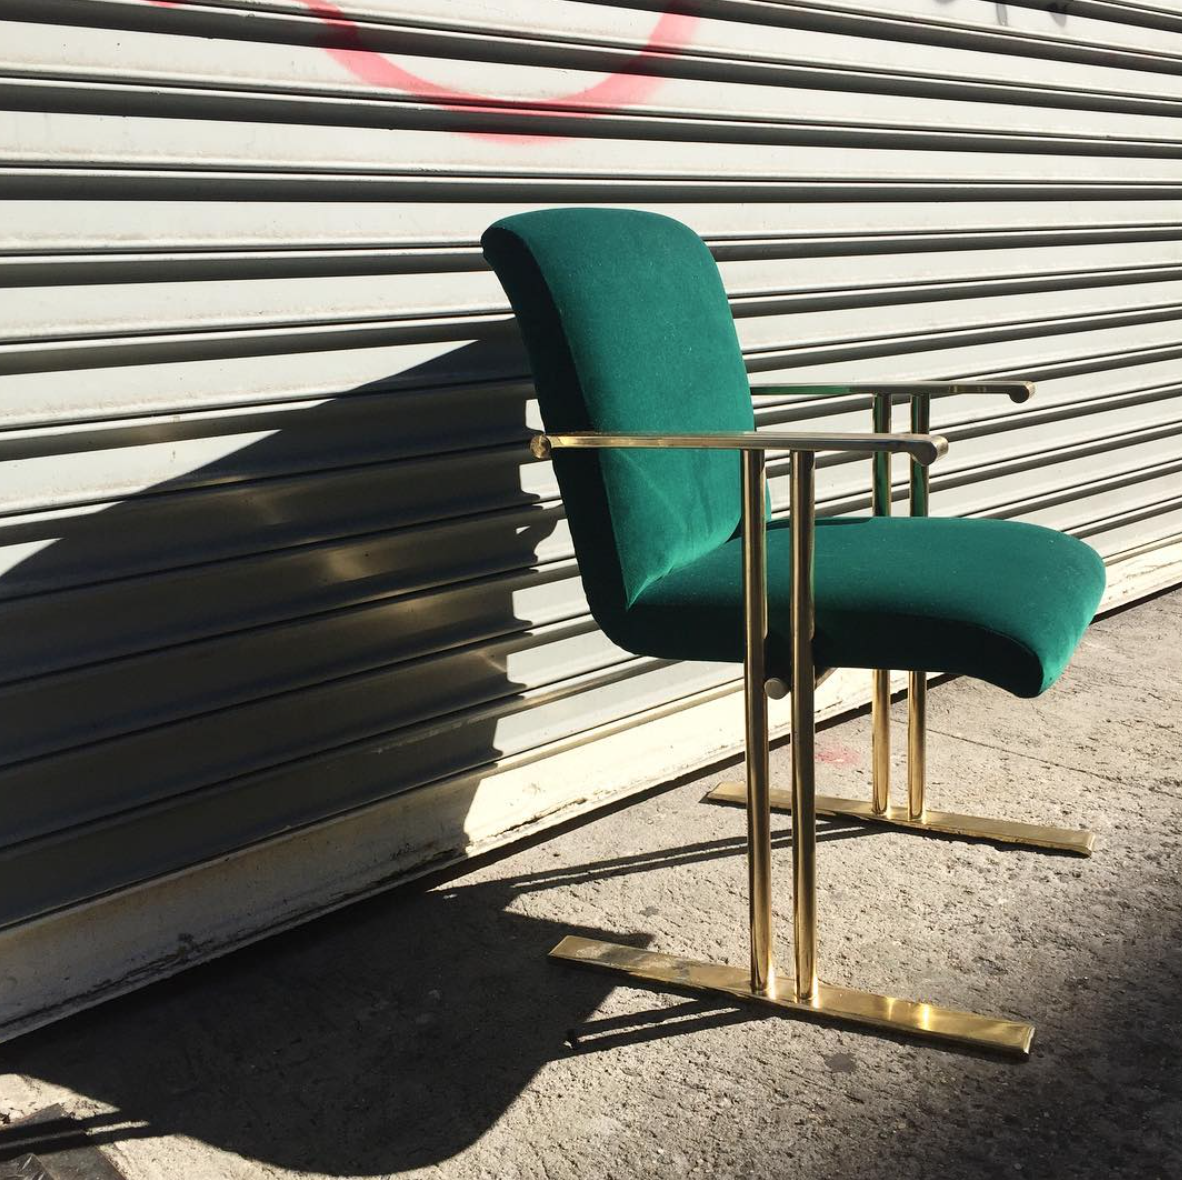 A vintage 70's brass chair got a makeover with this emerald green velvet.